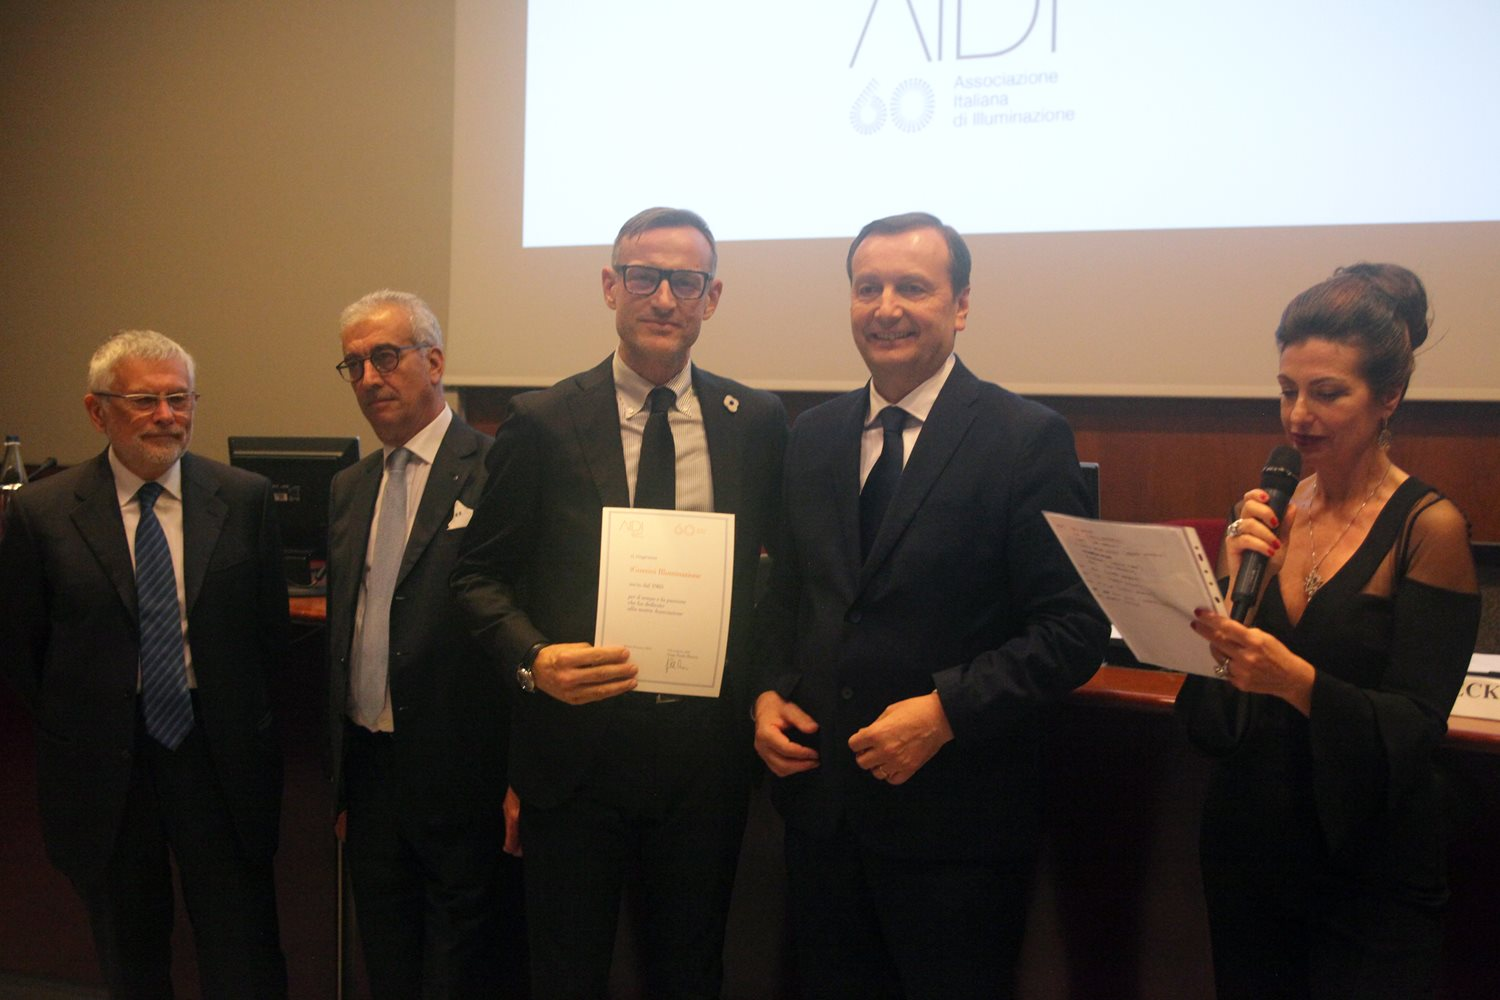 AIDI celebrates its 60th birthday